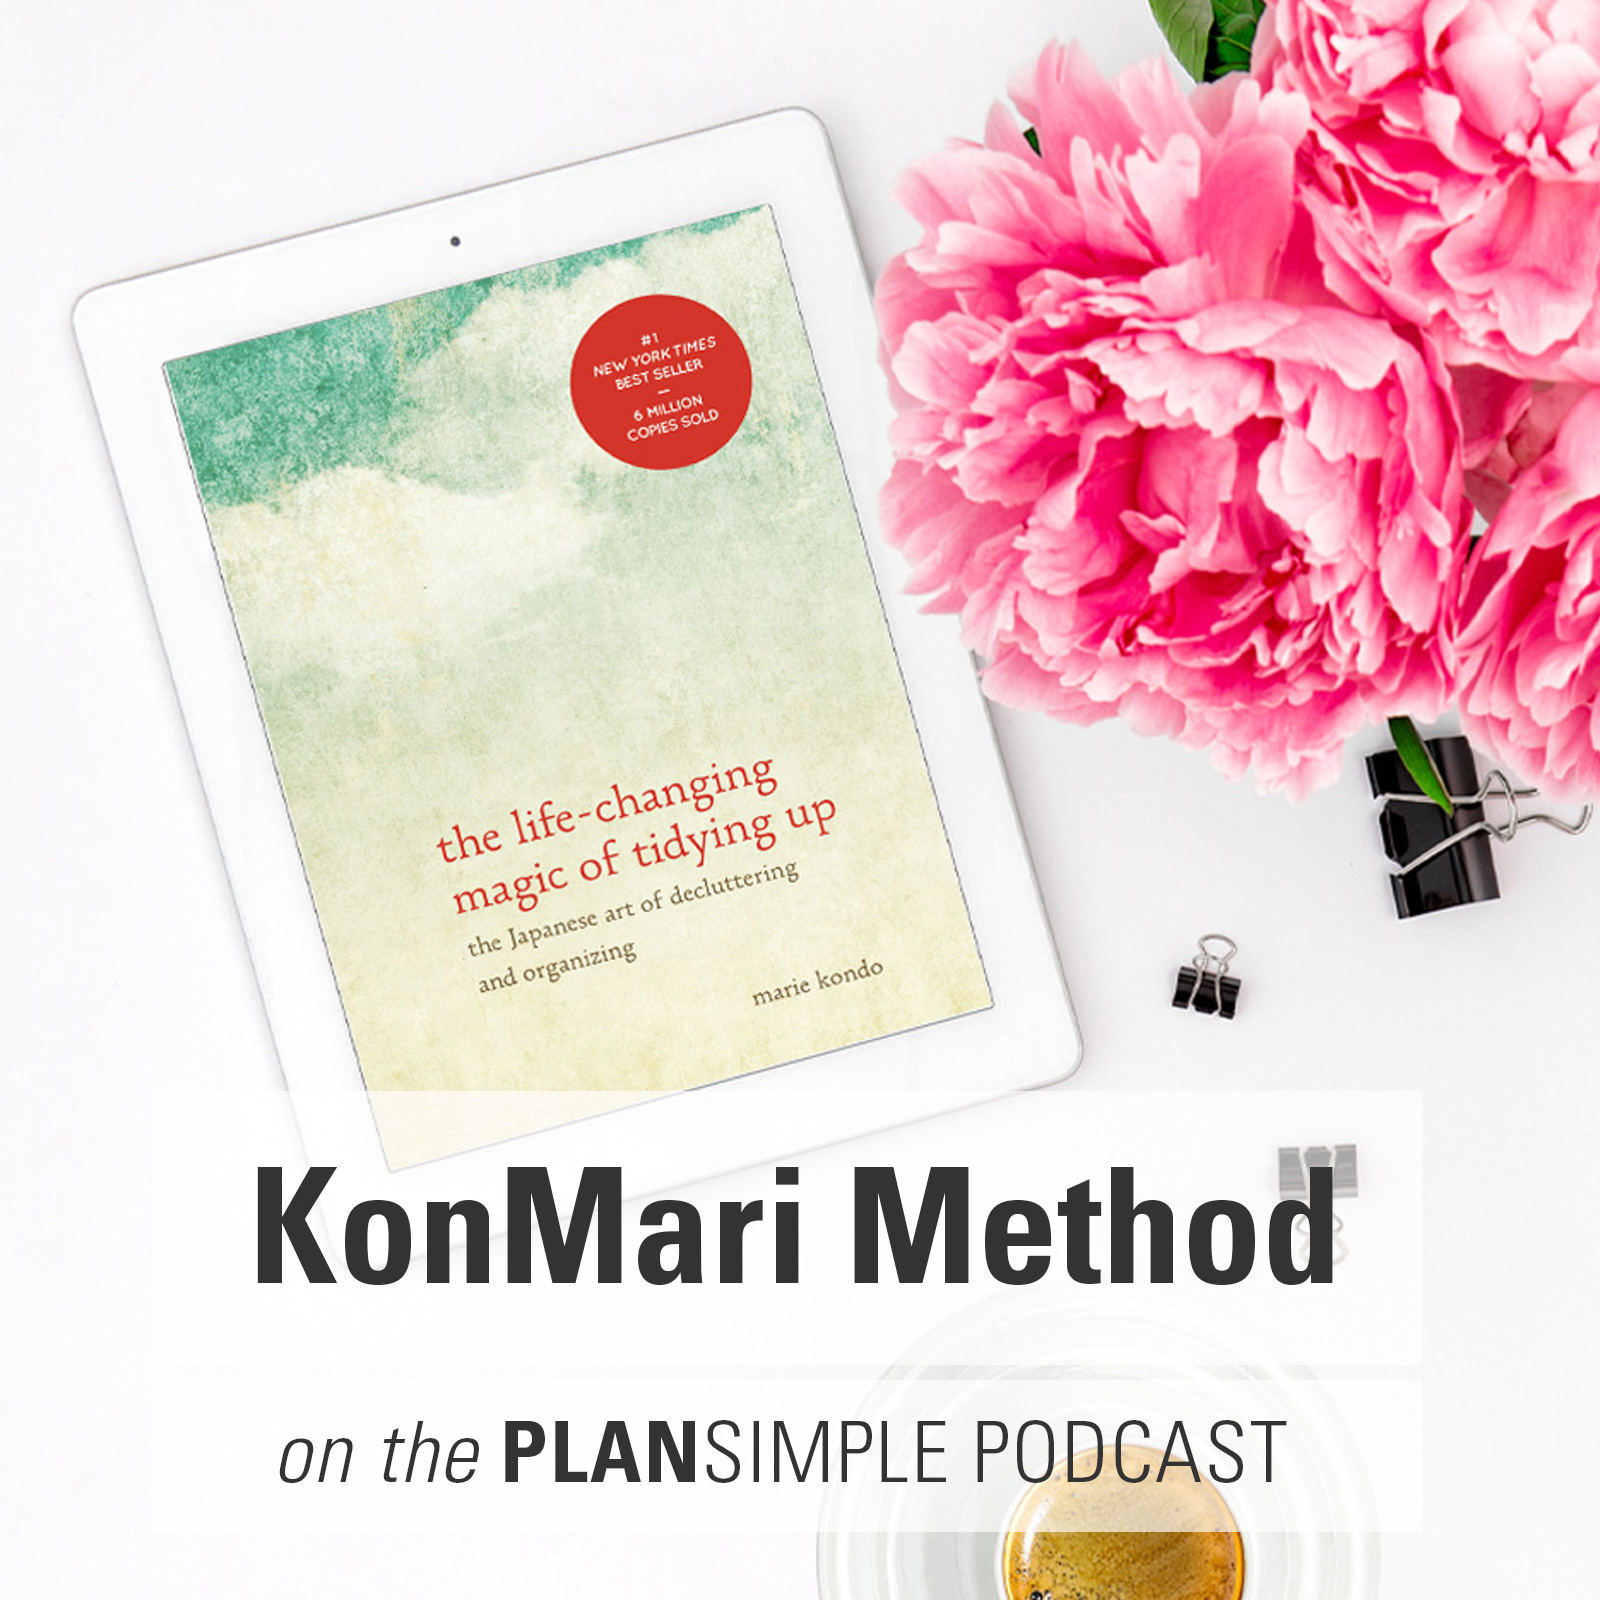 KonMari Method: A Chat With My Friend Lilia Flores